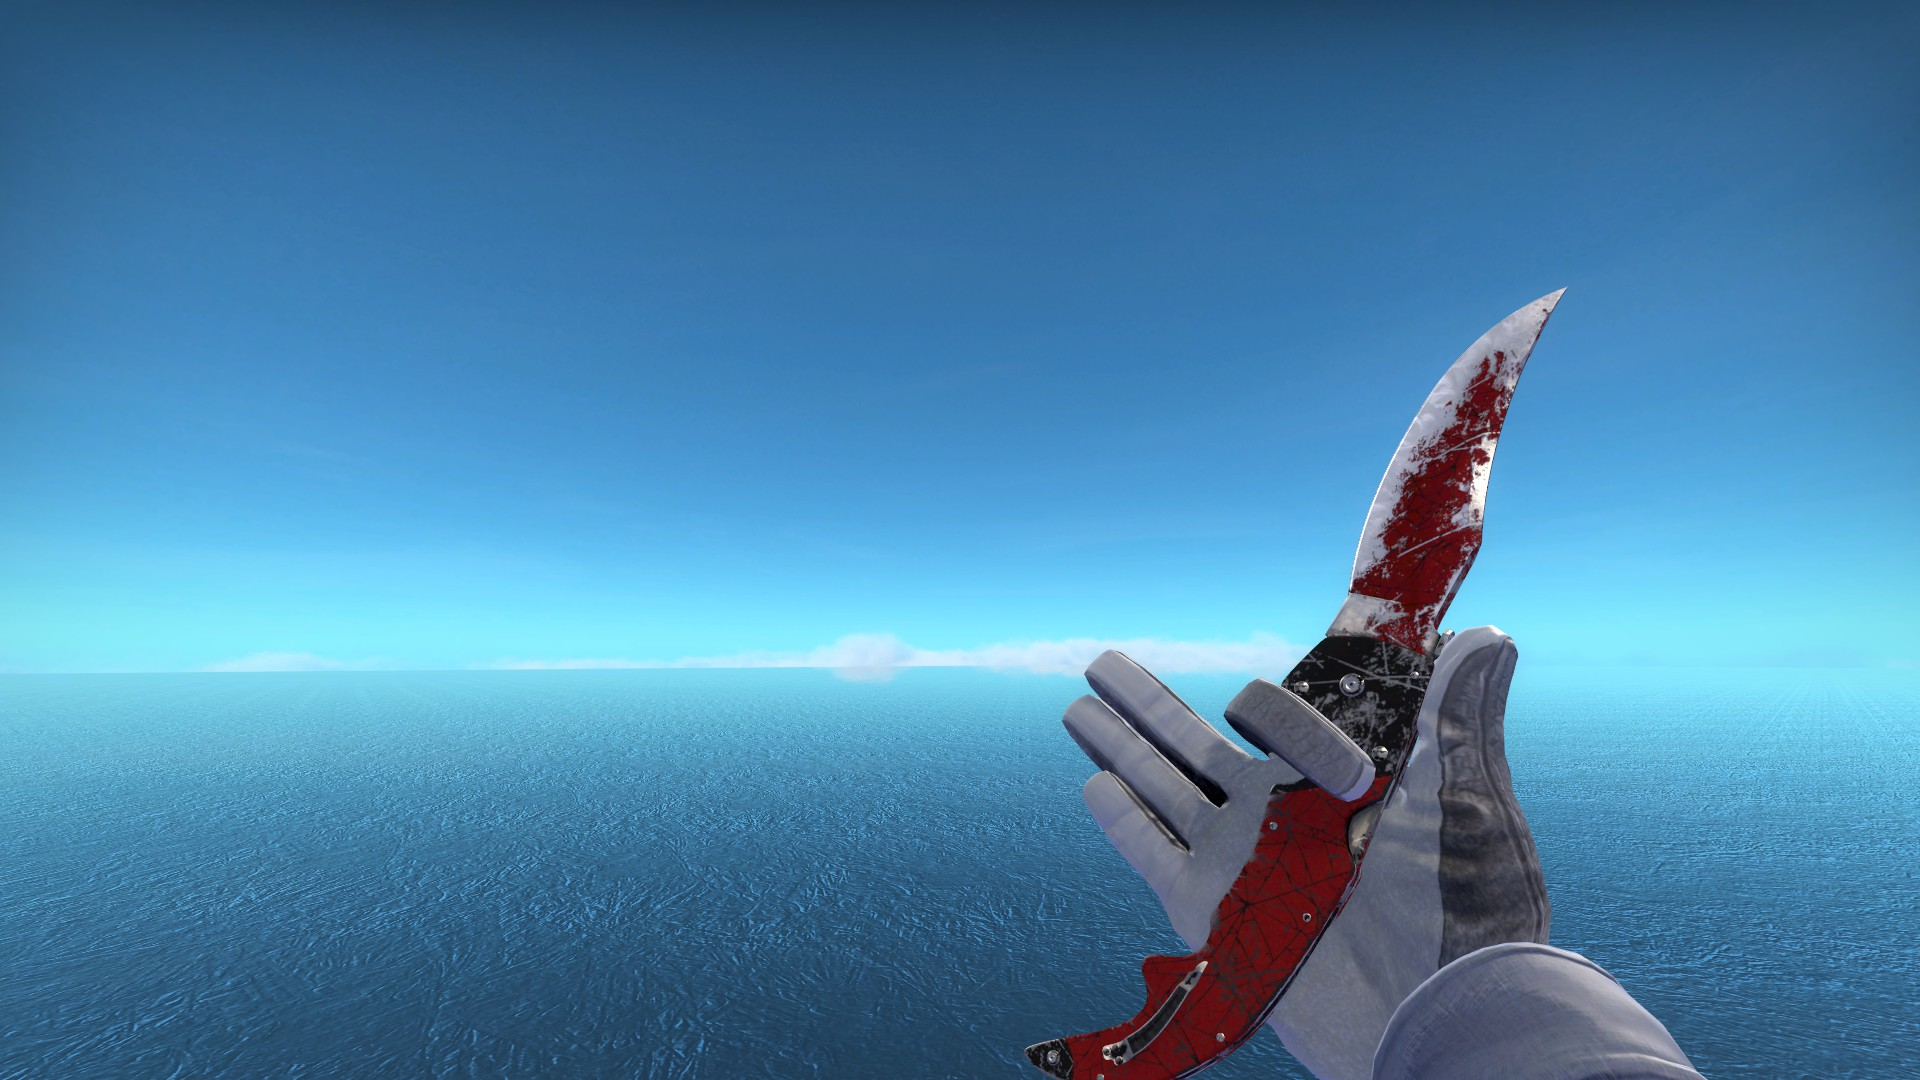 Falchion Knife   Crimson Web   Battle Scarred   Album on Imgur 1920x1080